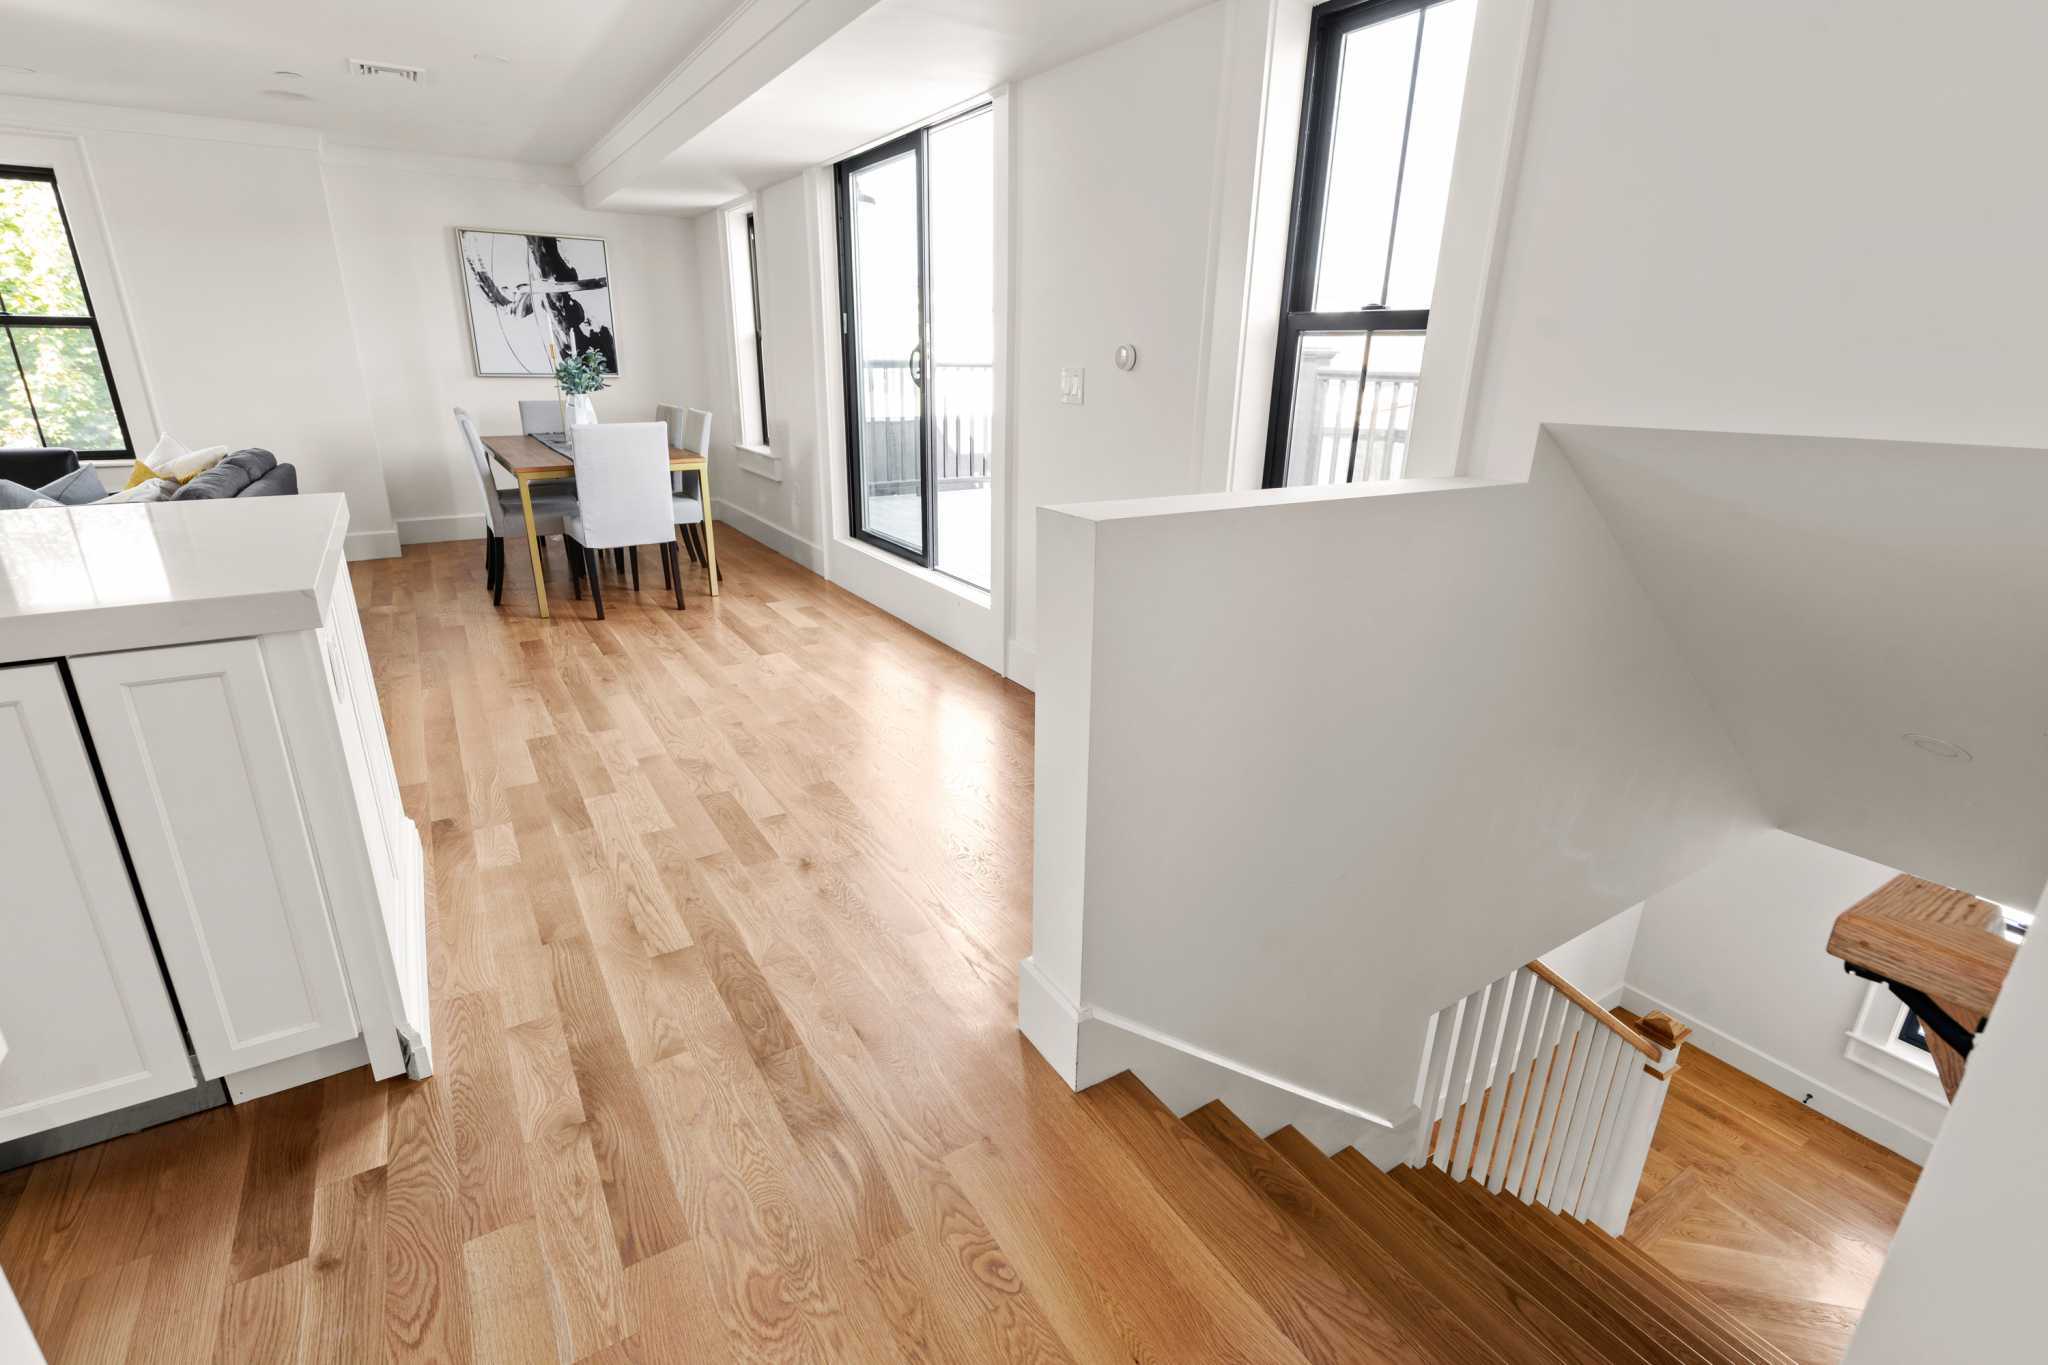 231 gold st new construction south boston (2)